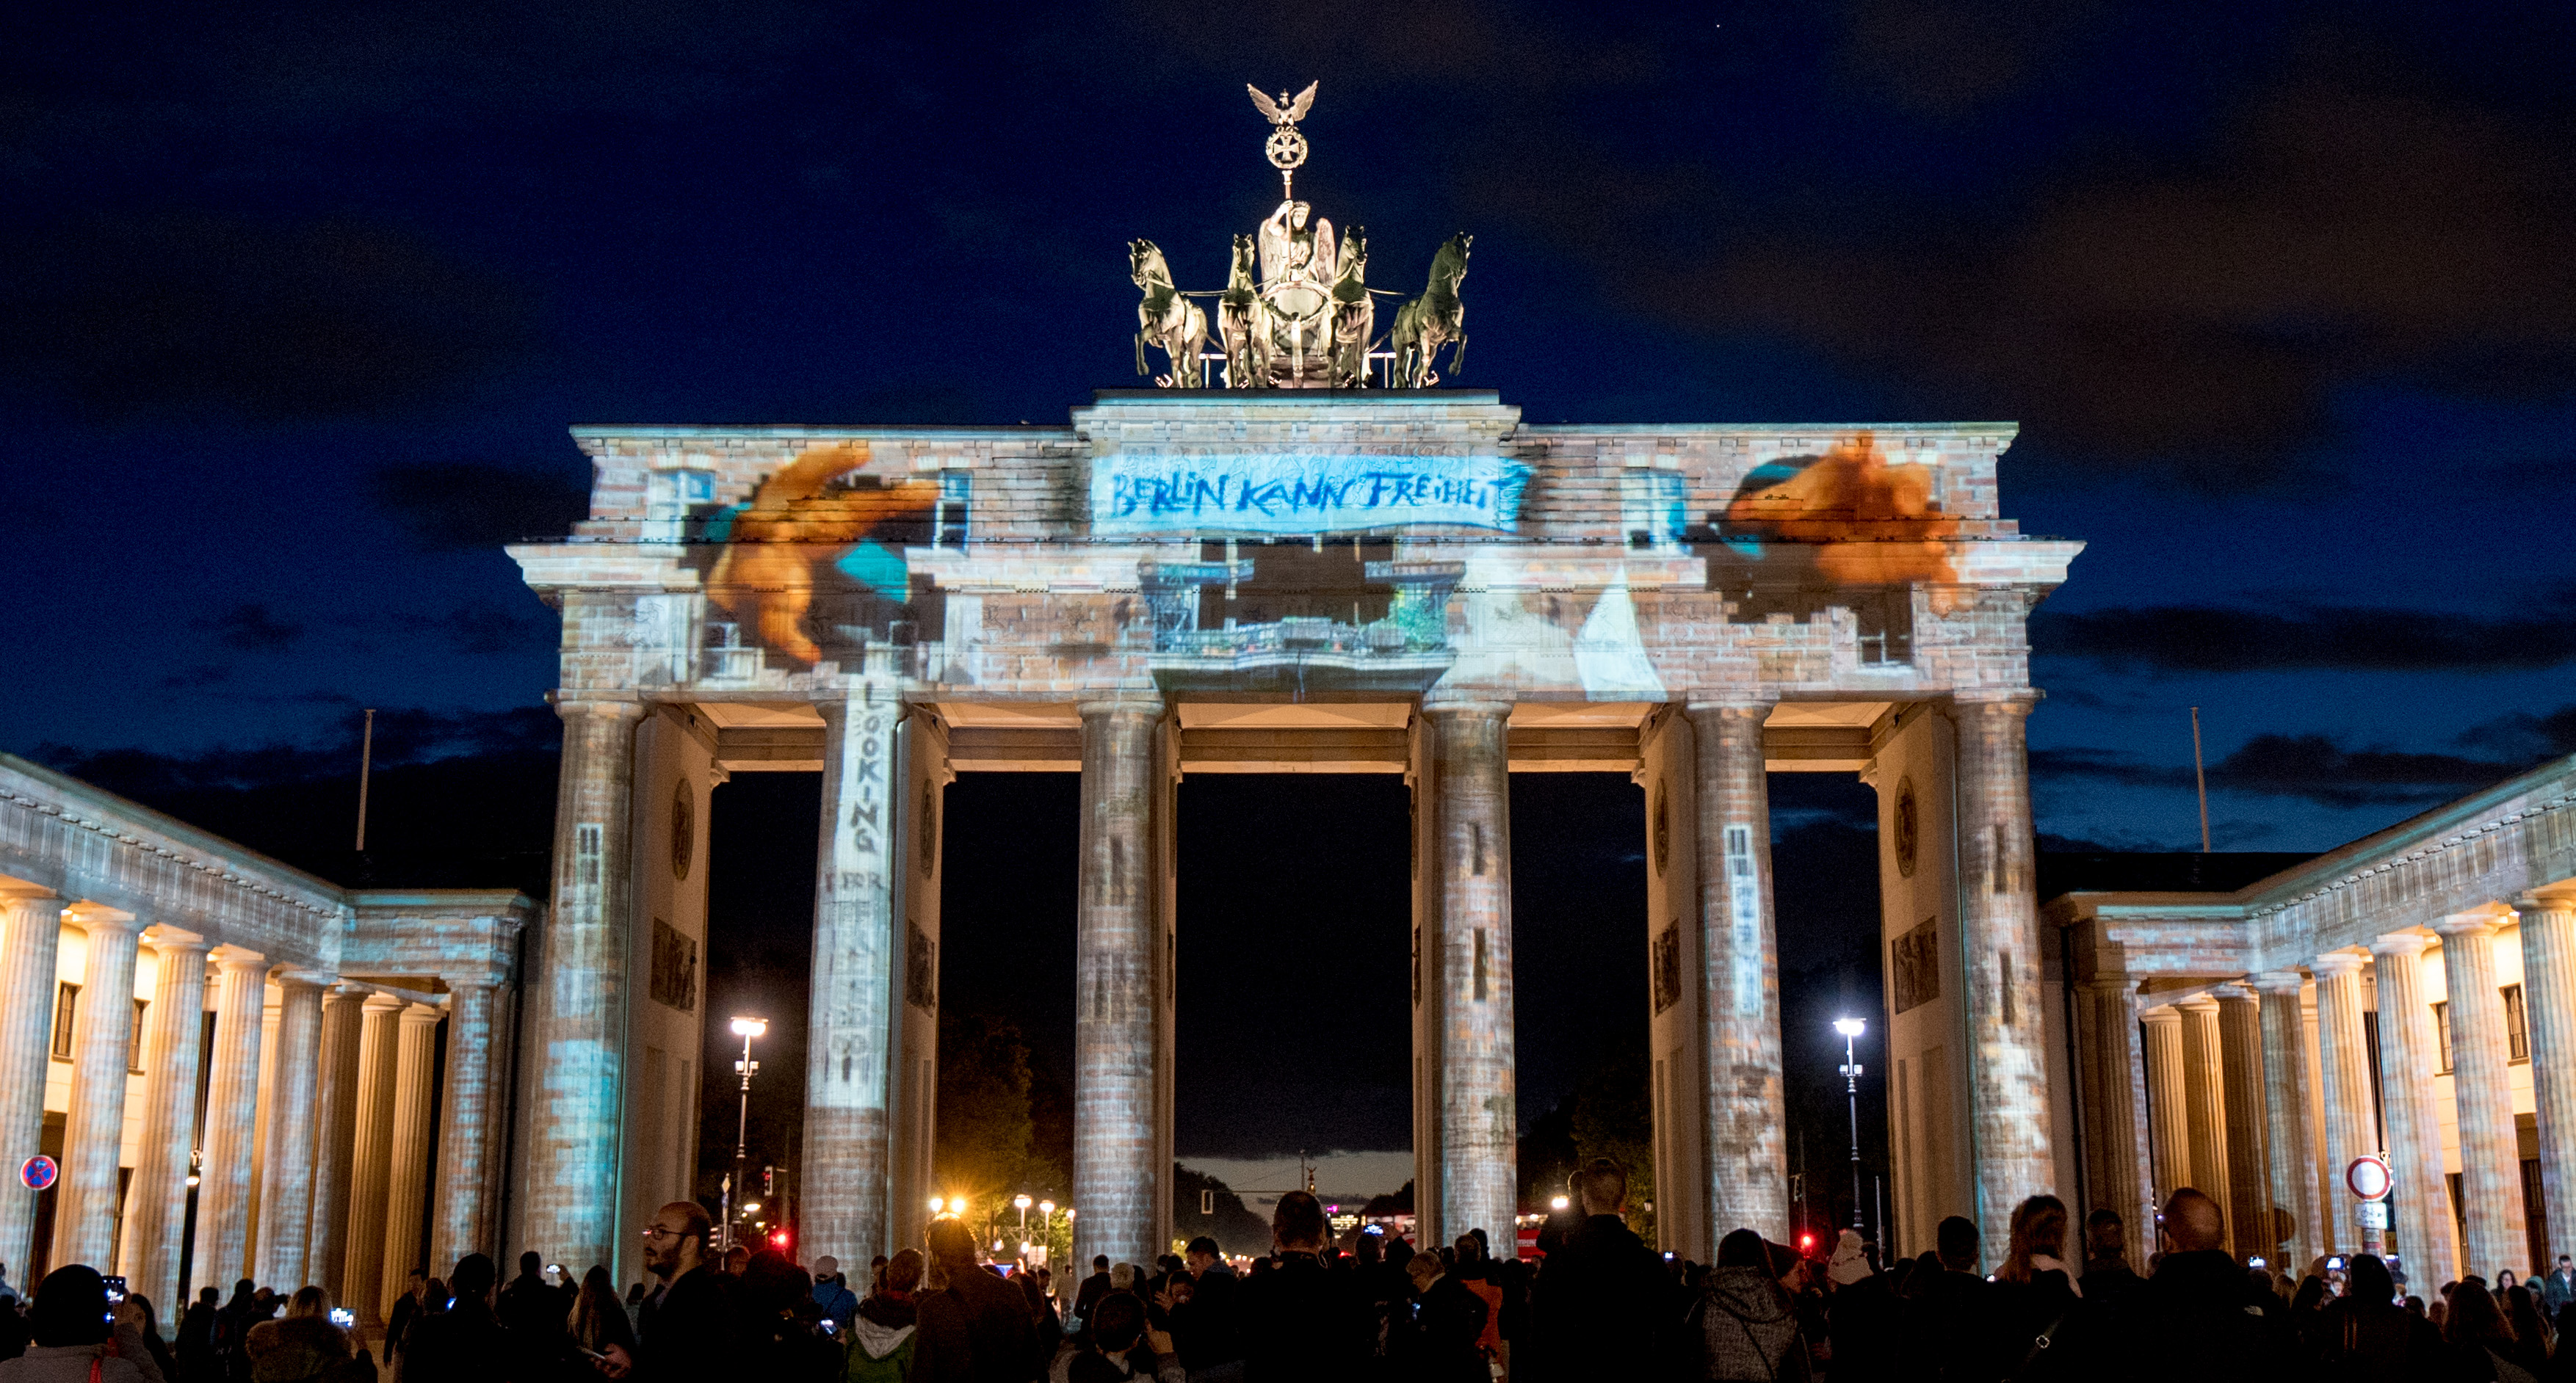 epa06248887 View of the Brandenburg Gate displaying a projection during the illumination festival 'Berlin leuchtet' (lit.: Berlin illuminated), in Berlin, Germany, 06 October 2017. Historic buildings, shopping malls, landmarks and bridges are screened with light installations, laser and 3D projections during the event. The festival takes place from 29 September to 15 October 2017.  EPA-EFE/ALEXANDER BECHER